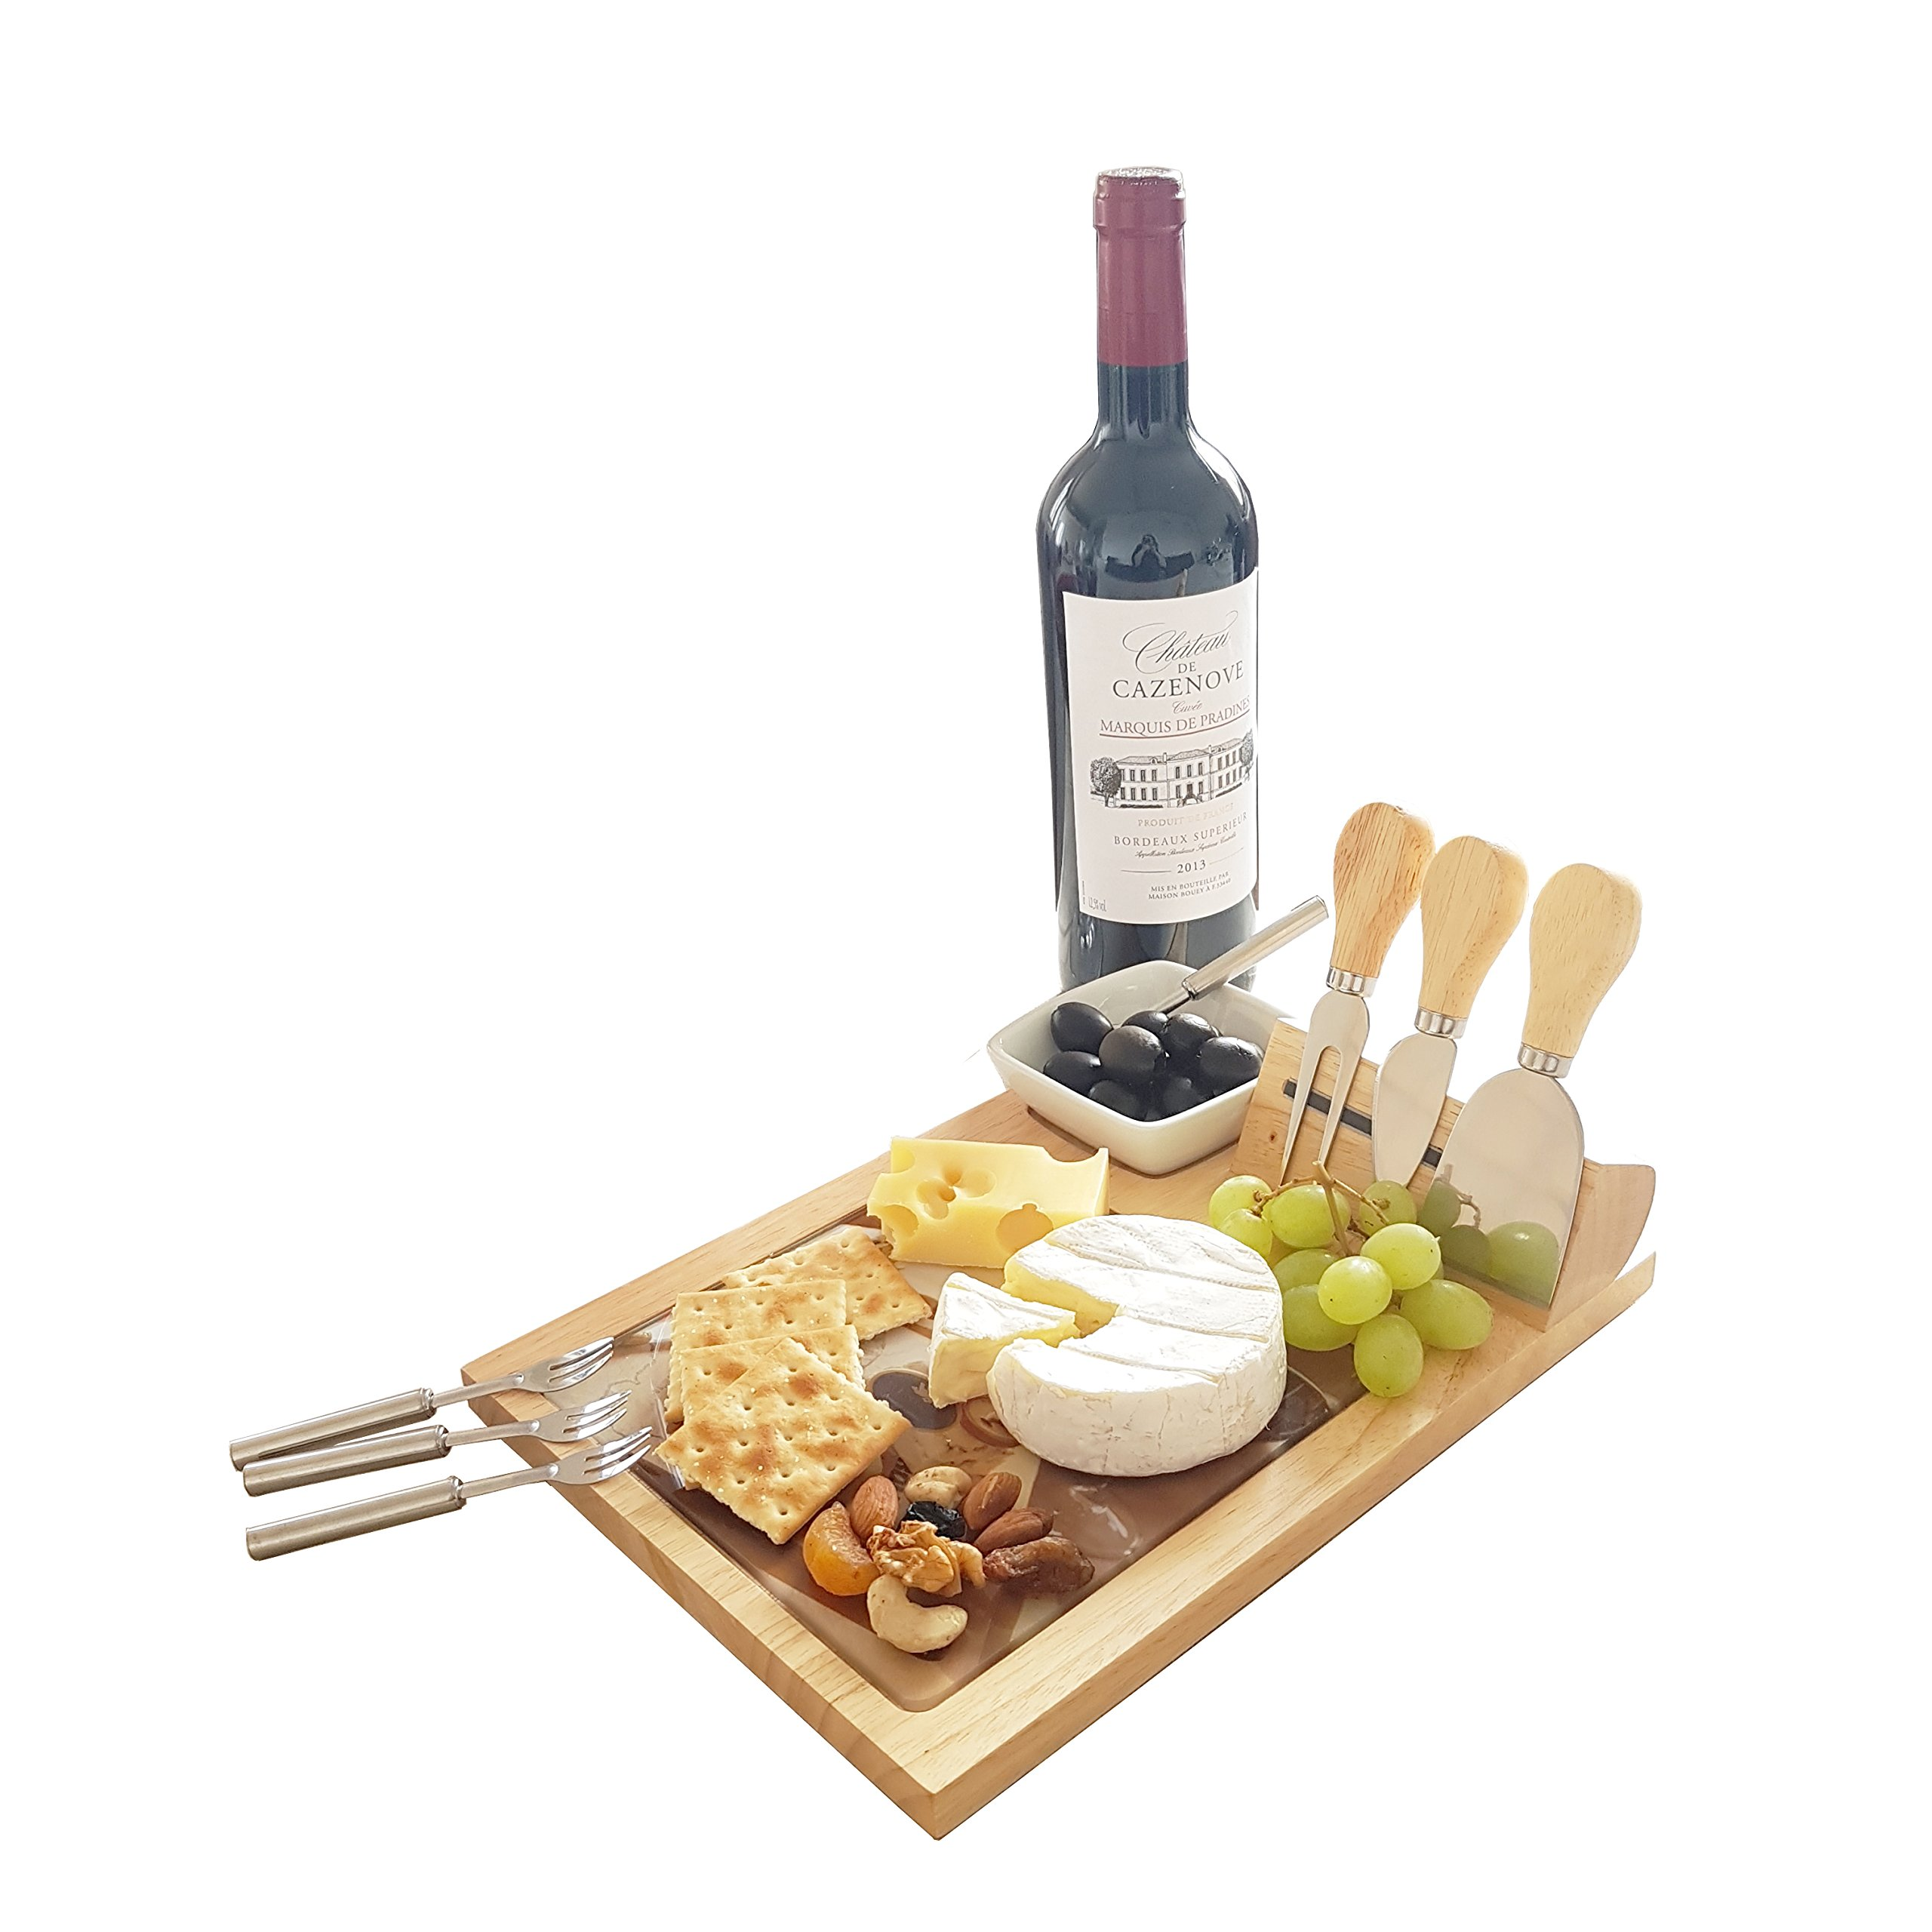 Premium Wood Cheese Board & Cutlery Knife Set with Tempered Glass Cutting Board and 4 pcs Stainless Steel Knives and Ceramic Bowl and 4 Mini Forks